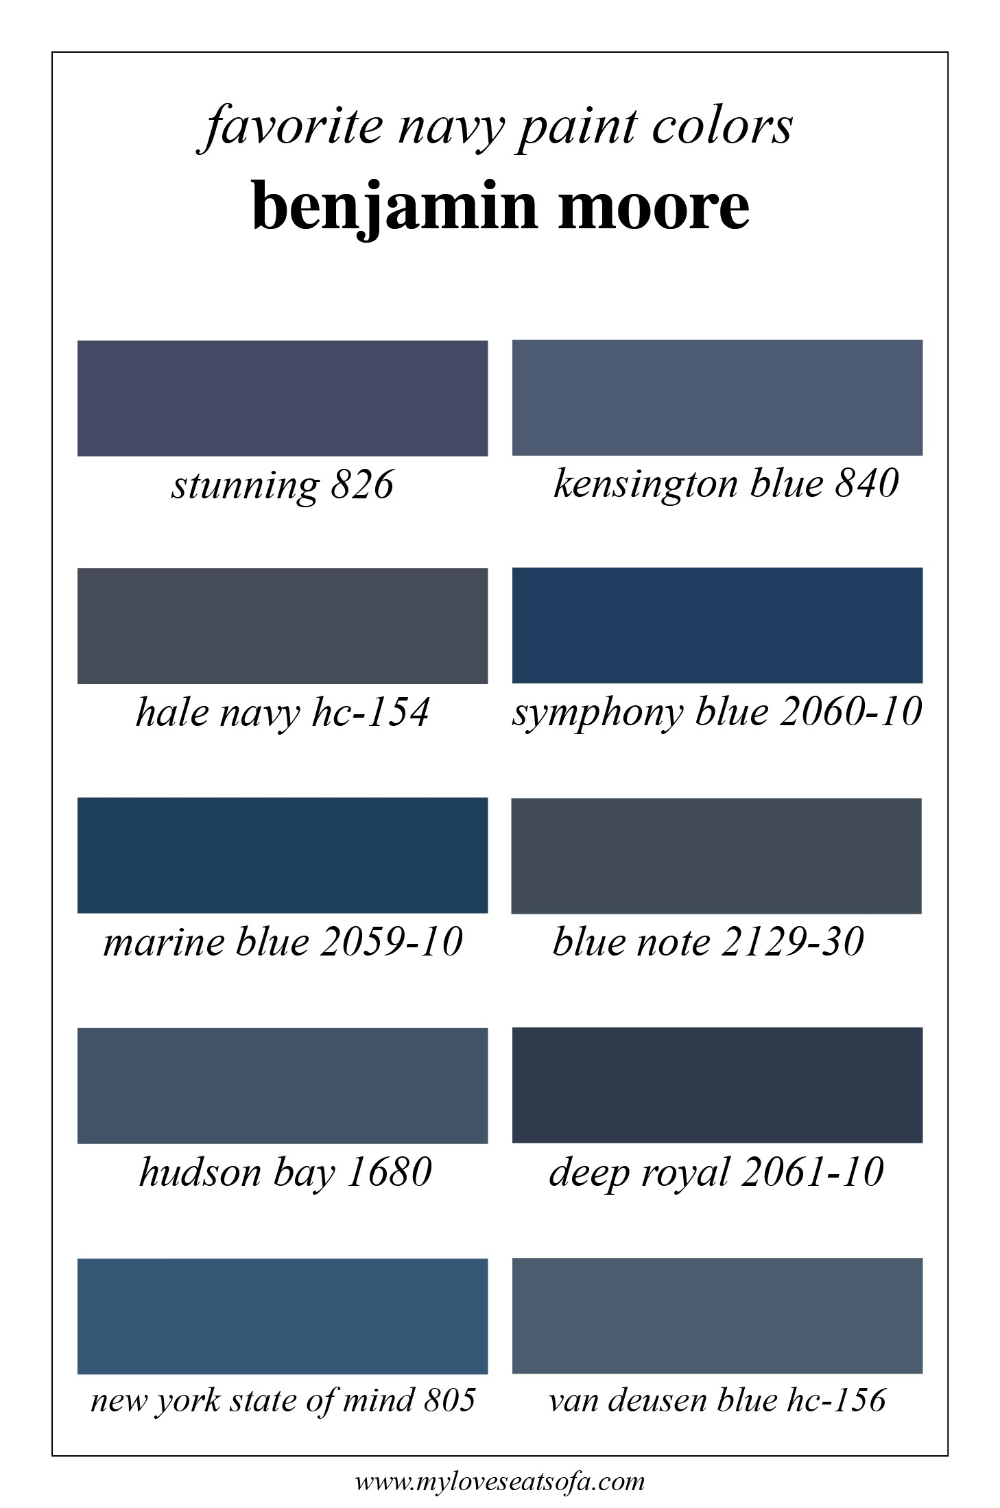 Benjamin Moore Exterior Paint Color Chart Luxury Favorite Navy Blue Benjamin Moore Paint C Navy Blue Paint Colors Navy Paint Colors Paint Colors Benjamin Moore